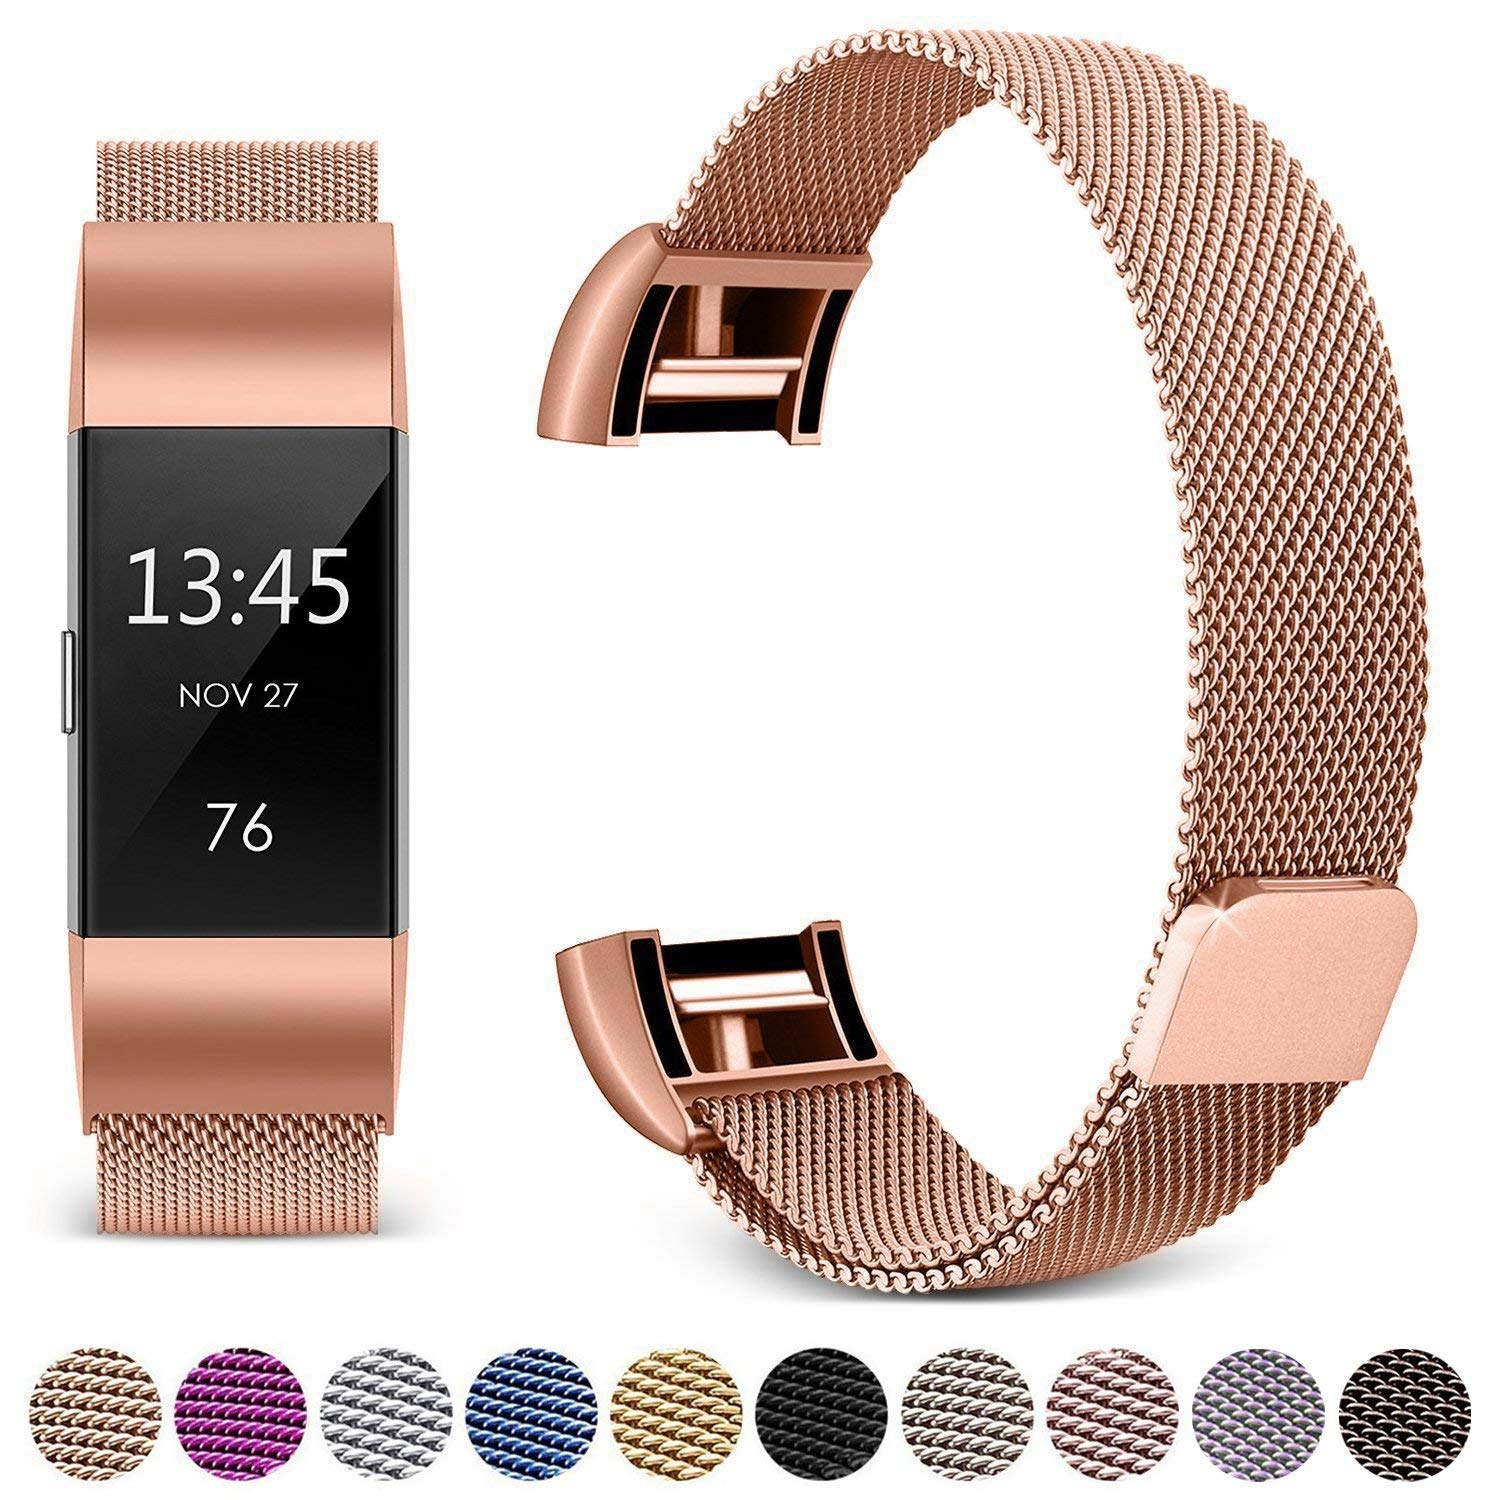 Hotodeal Band Compatible Fitbit Charge 2 Bands, Band Milanese Loop Stainless Steel Magnet Metal Replacement Bracelet Strap, Wristbands Accessories Women Men Small Large Silver